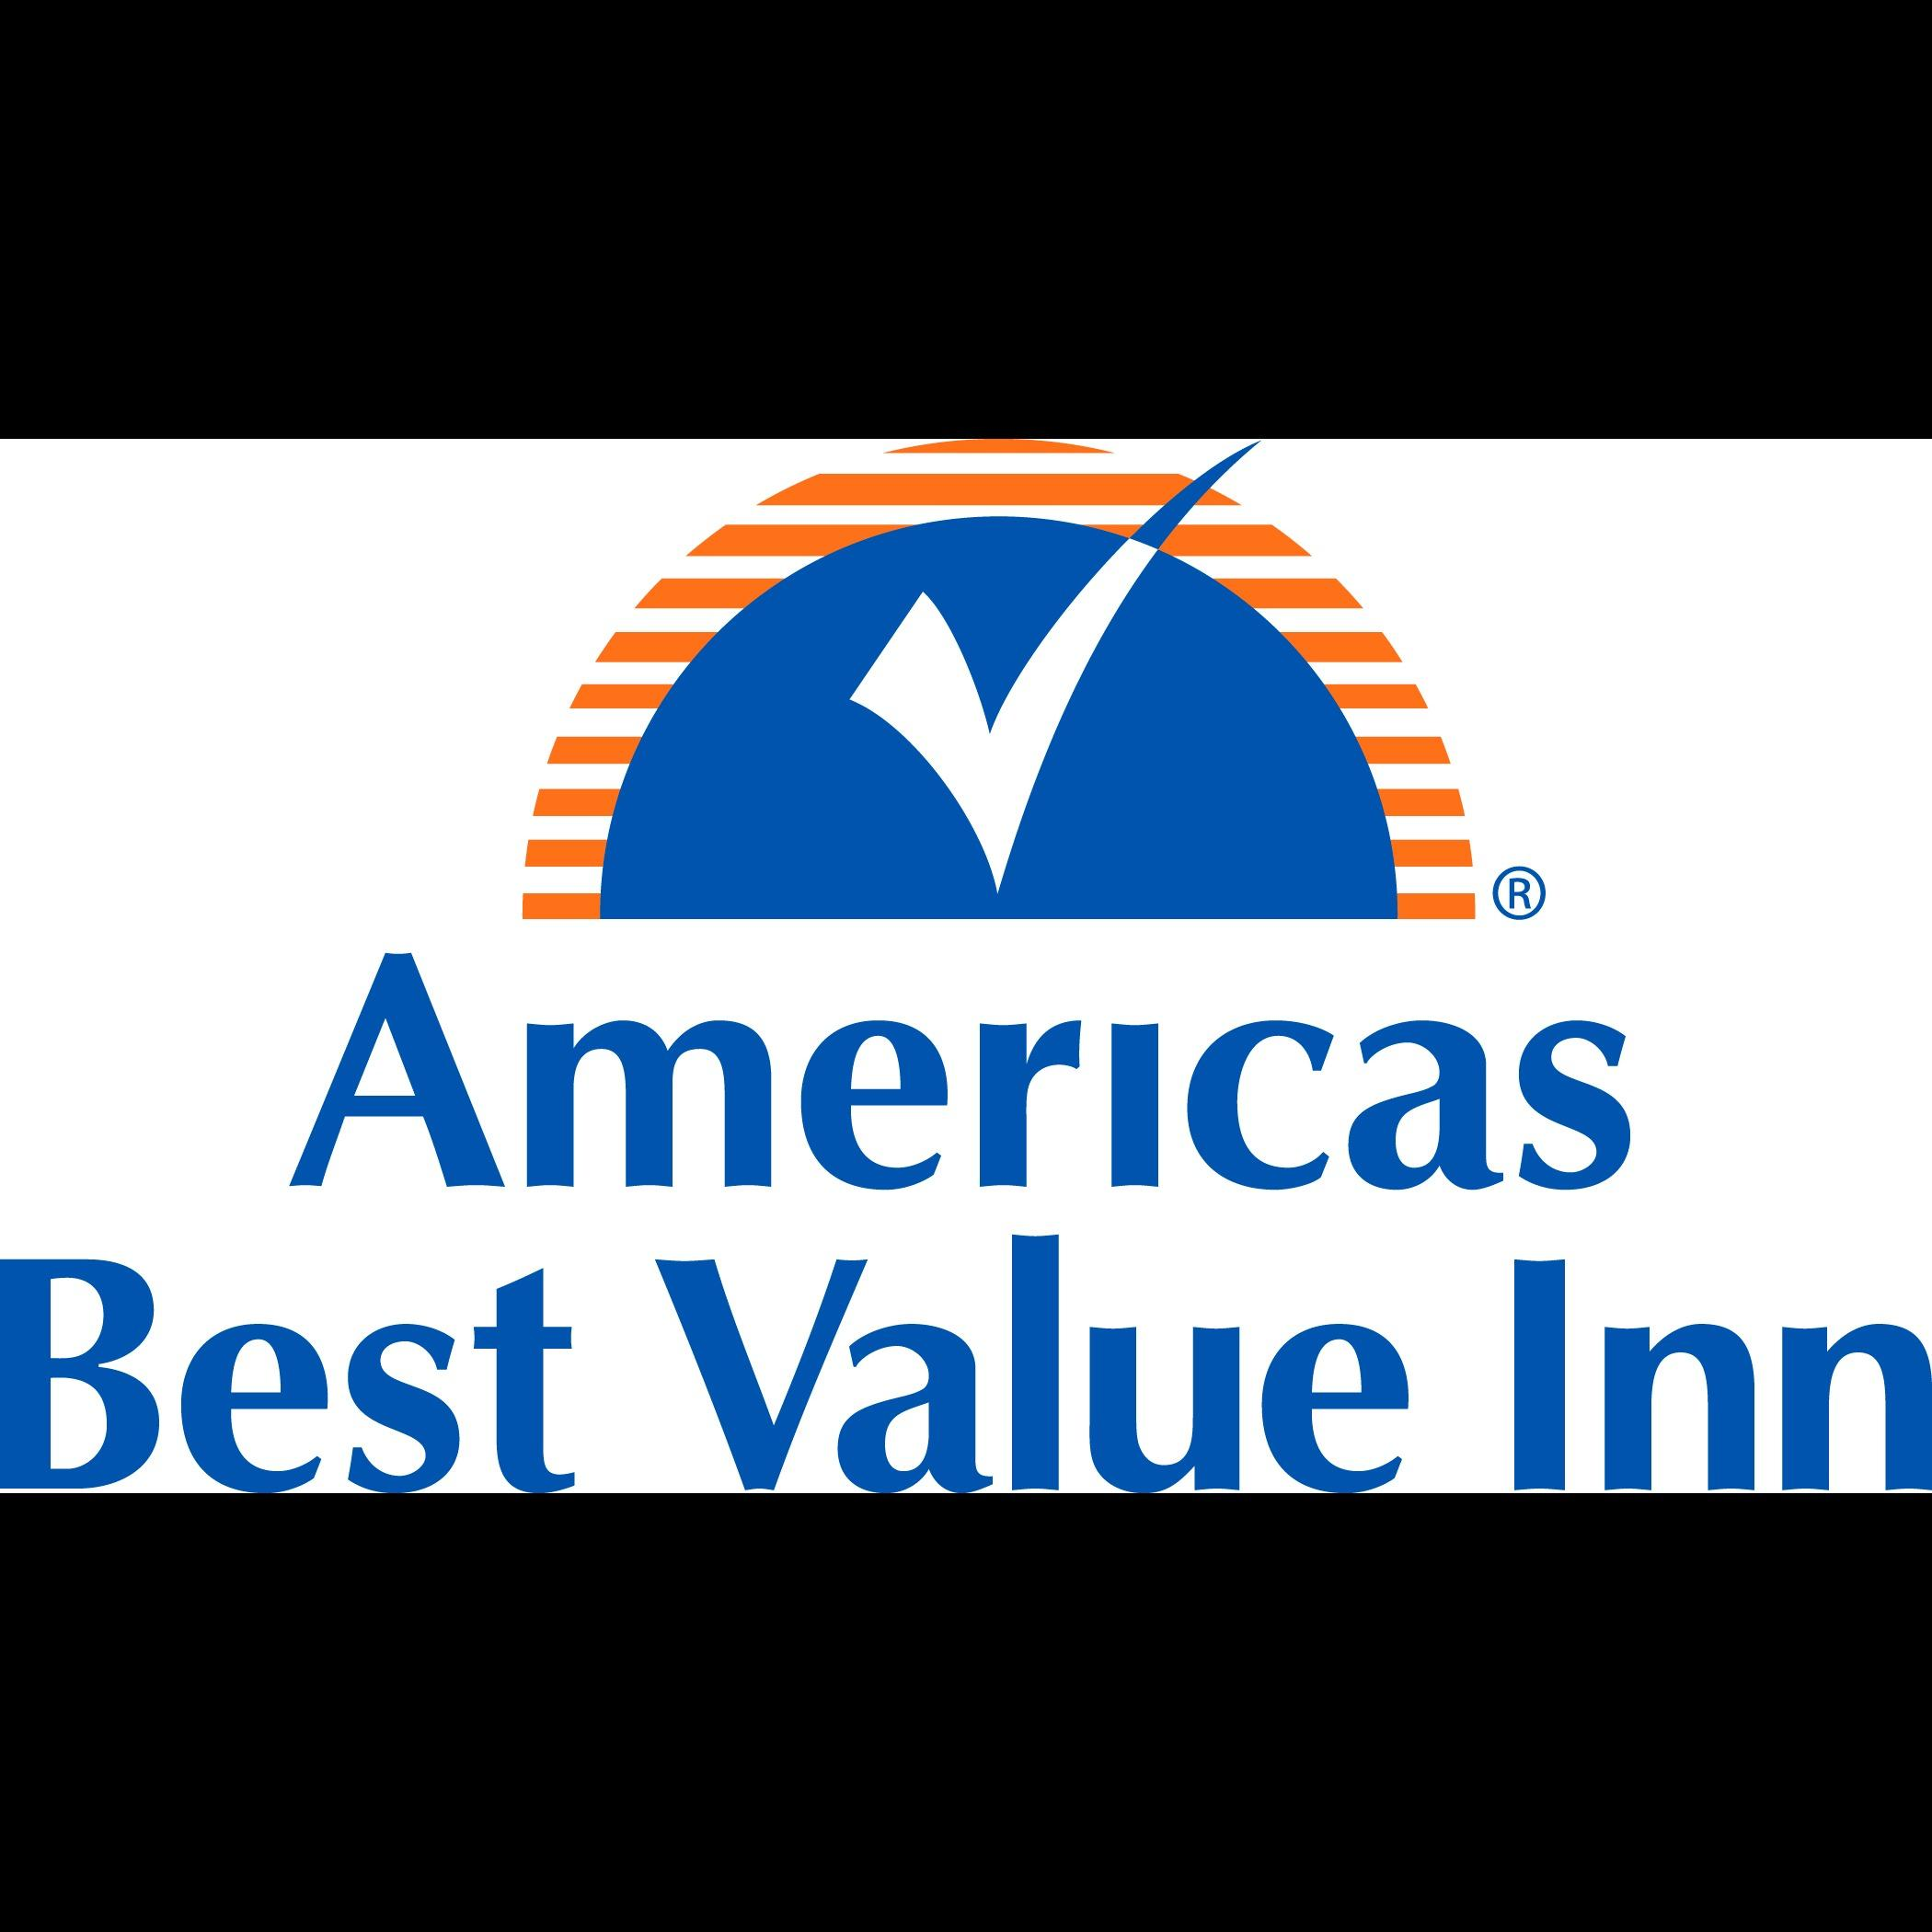 Americas Best Value Inn & Suites - Bush Int'l Airport